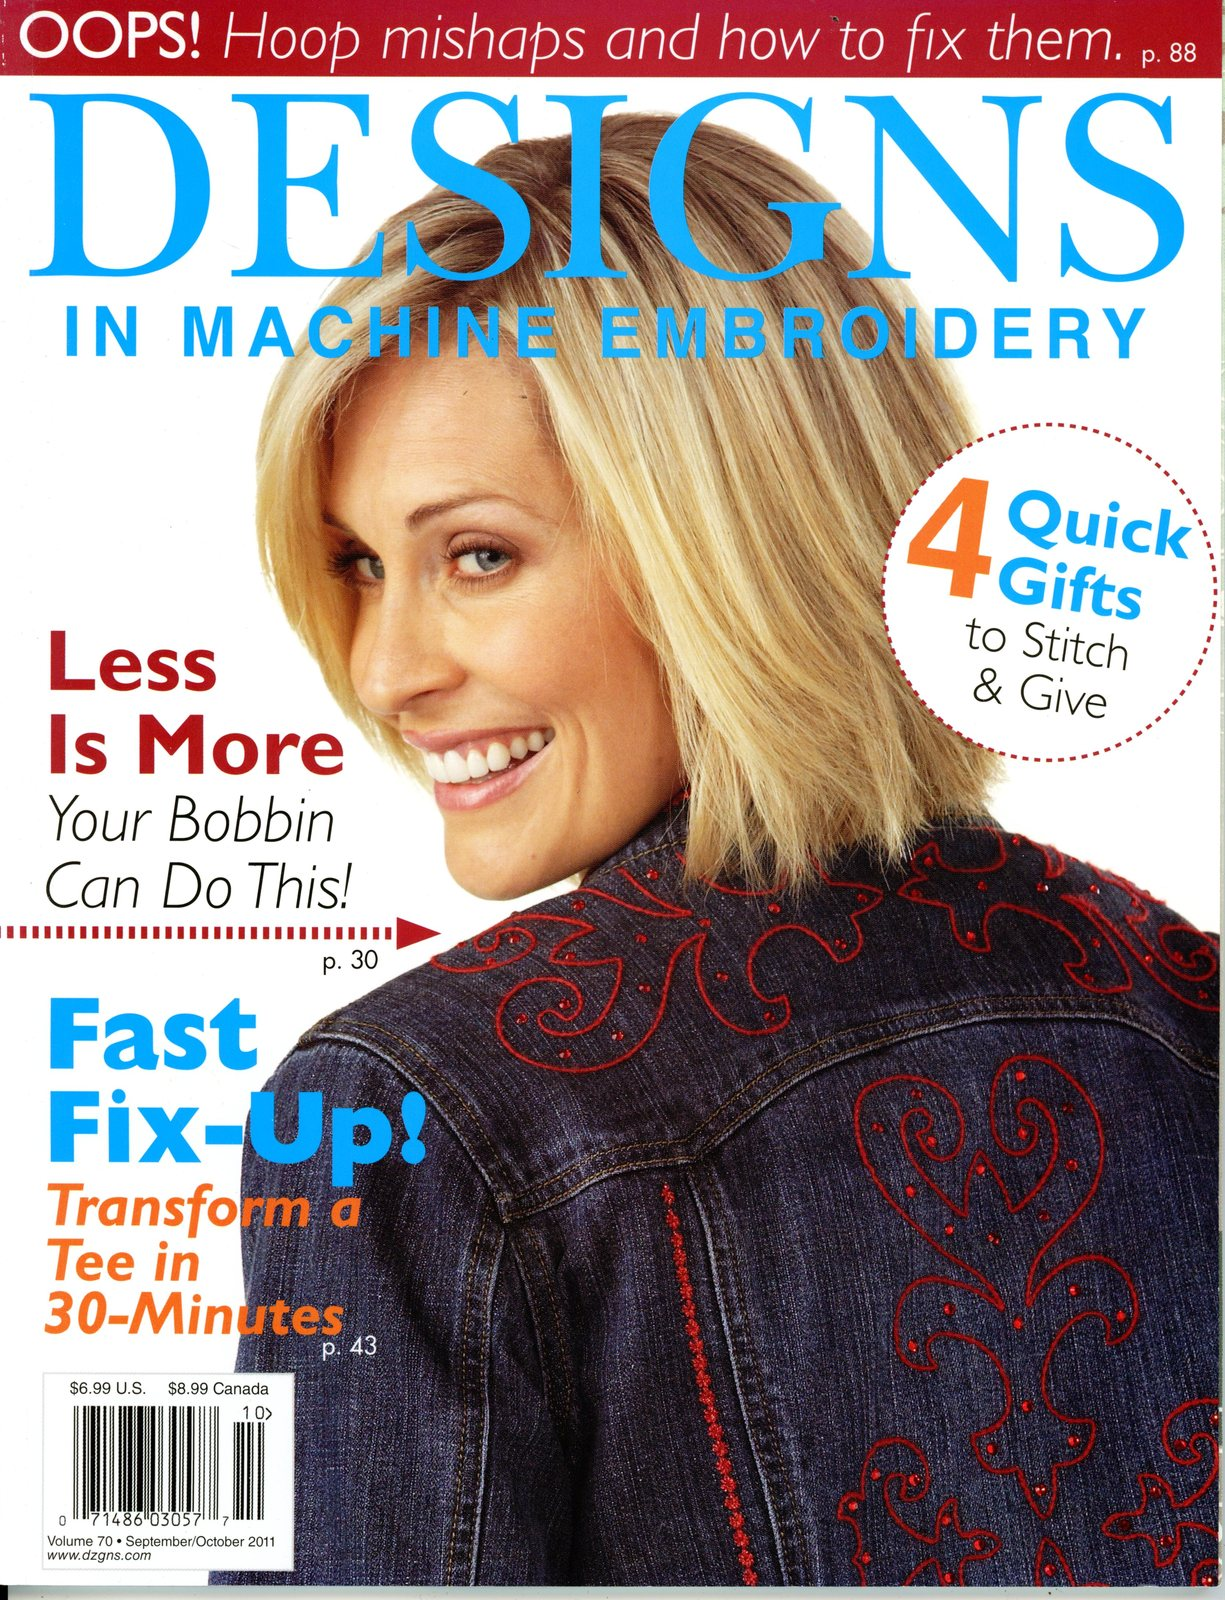 Primary image for Designs in Machine Embroidery Magazine Vol 70 Sep/Oct 2011 Organizer T-Shirts